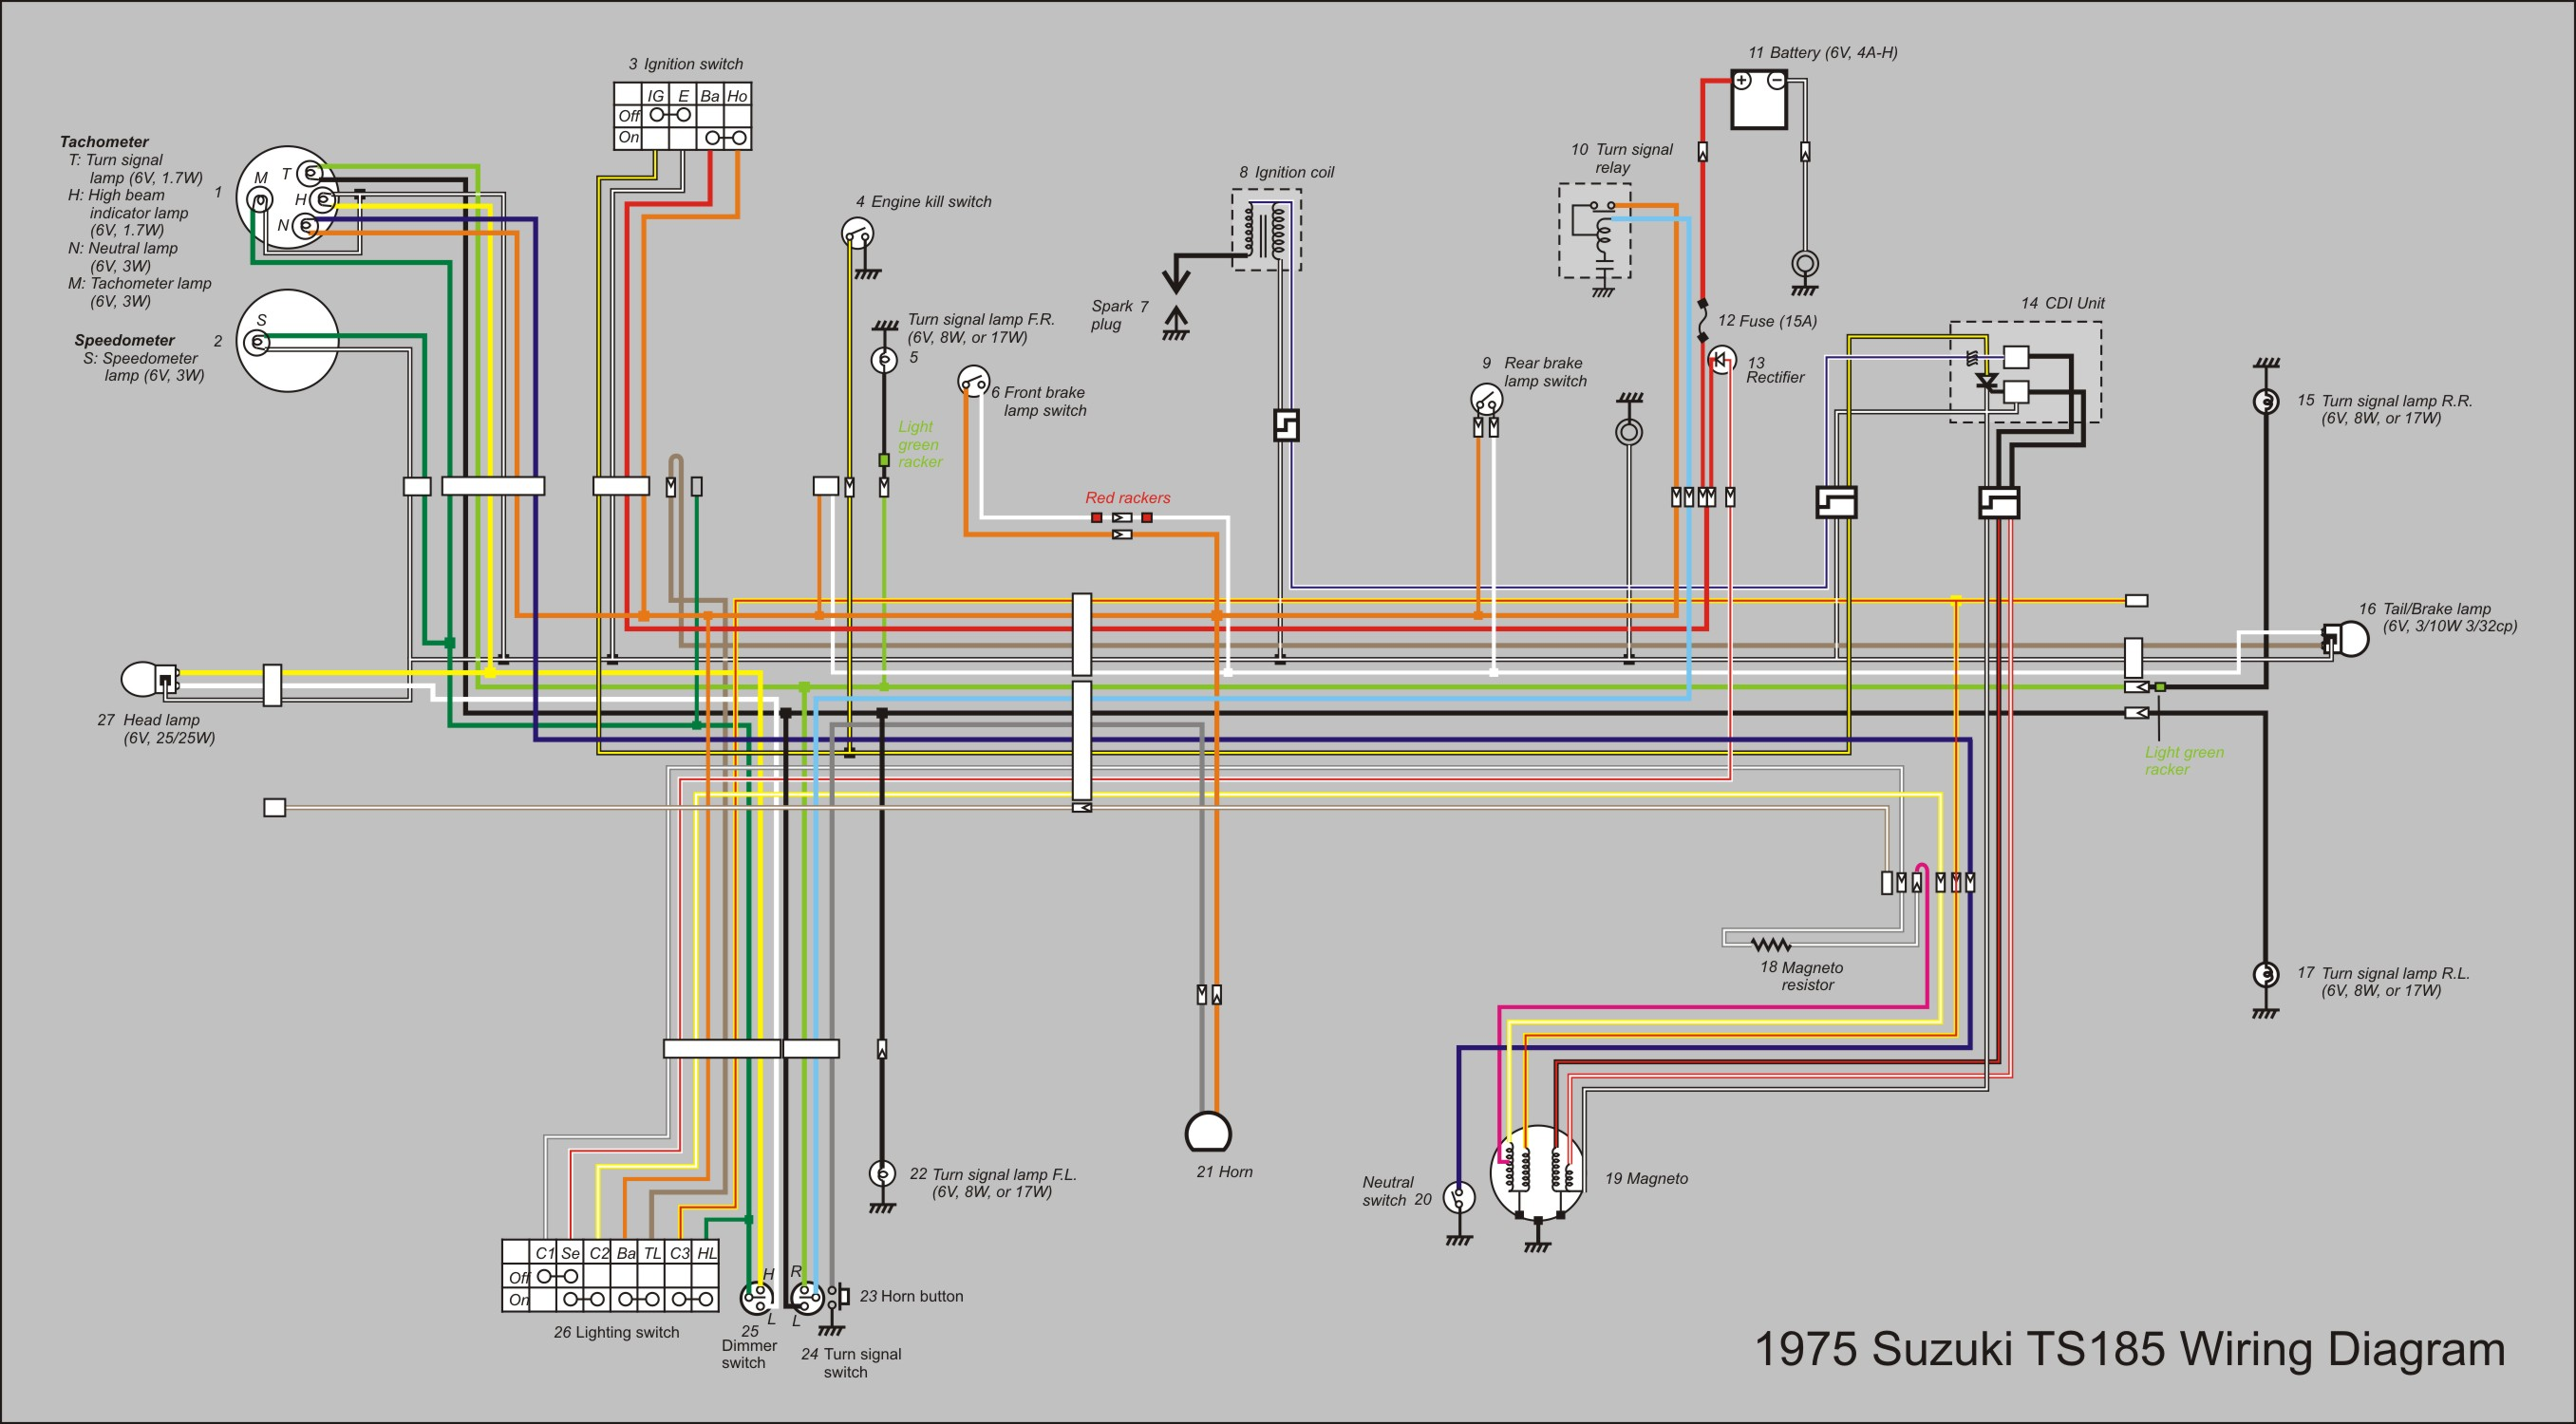 Filets185 Wiring Diagram New Wikimedia Commons Outlet Additionally Wire Light Switch From